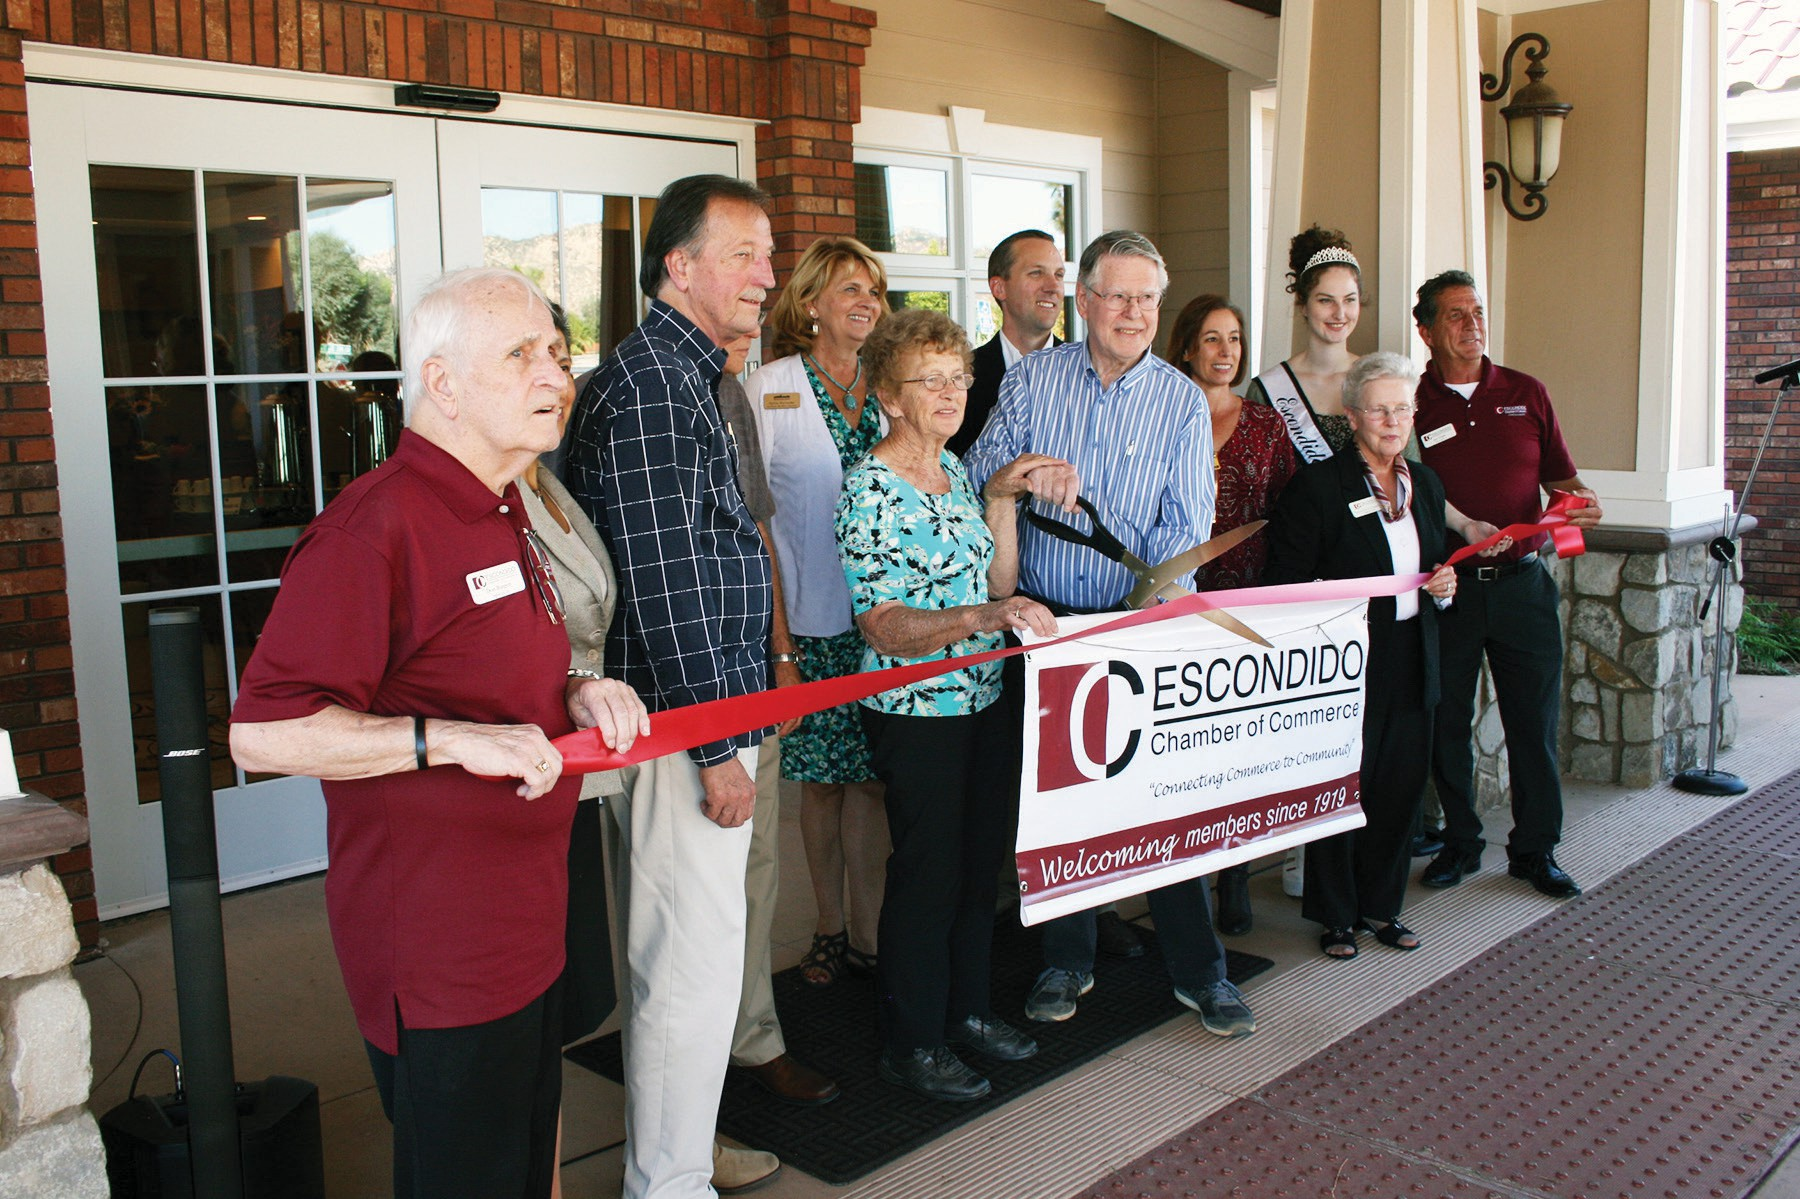 The ribbon cutting group (from left): Don Burgett, Rosa Ruiz, Ed Gallo, Don Smith, Jane and Jack Brouwer, Sylvia Wycinsky, Mark Memmel, Suzanne Southwell, Rorie Johnston, Escondido Princess Amanda Cowie, Joe Coyle.